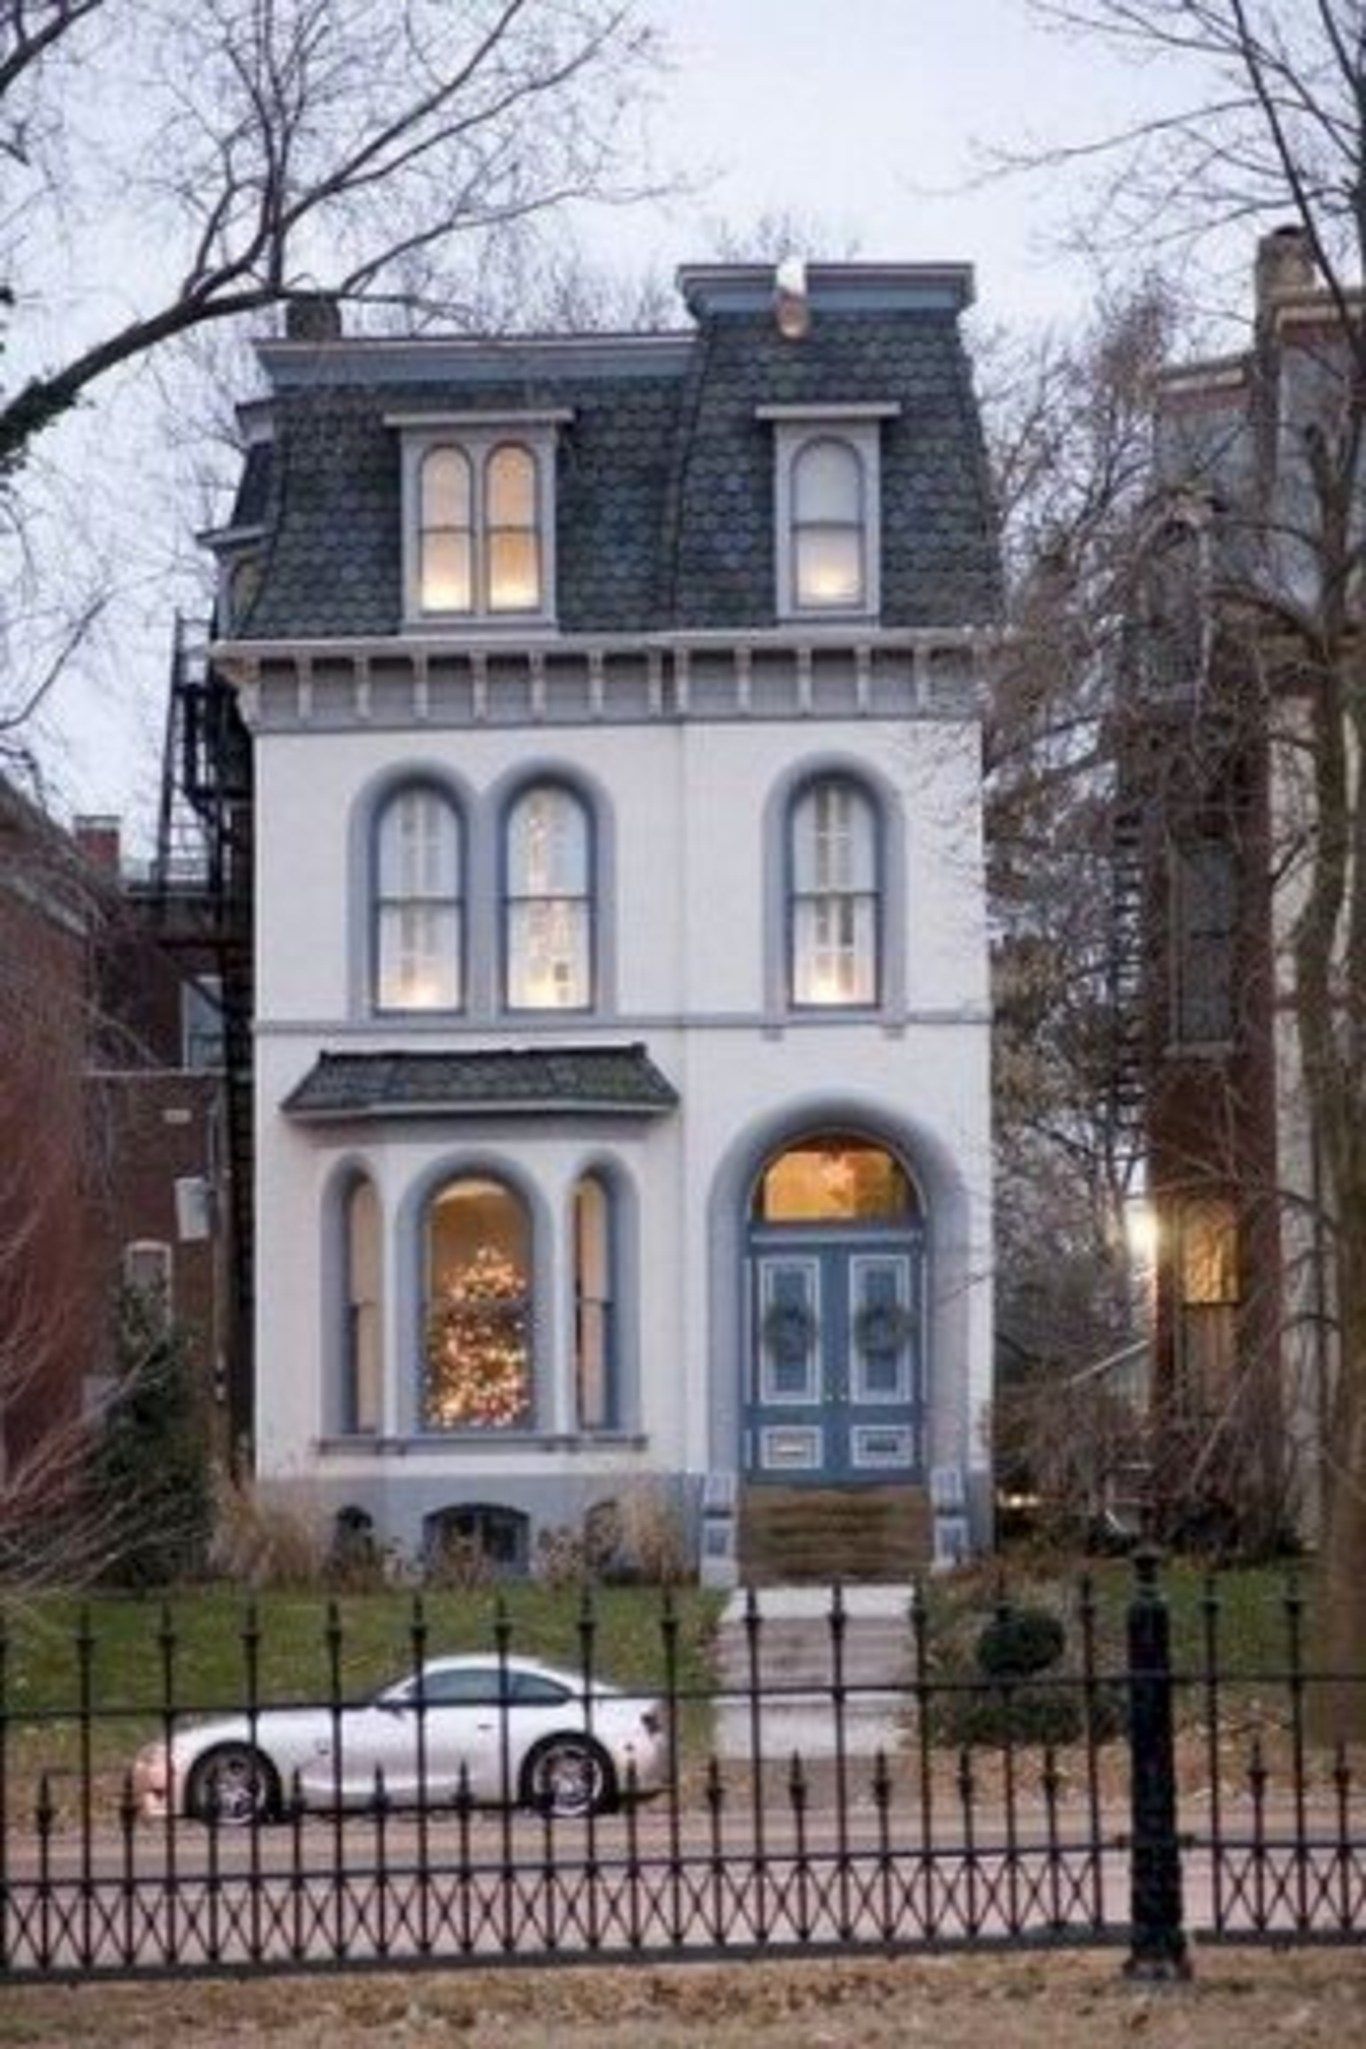 94 Incredible Old Houses Design Ideas for You is part of Victorian house colors -